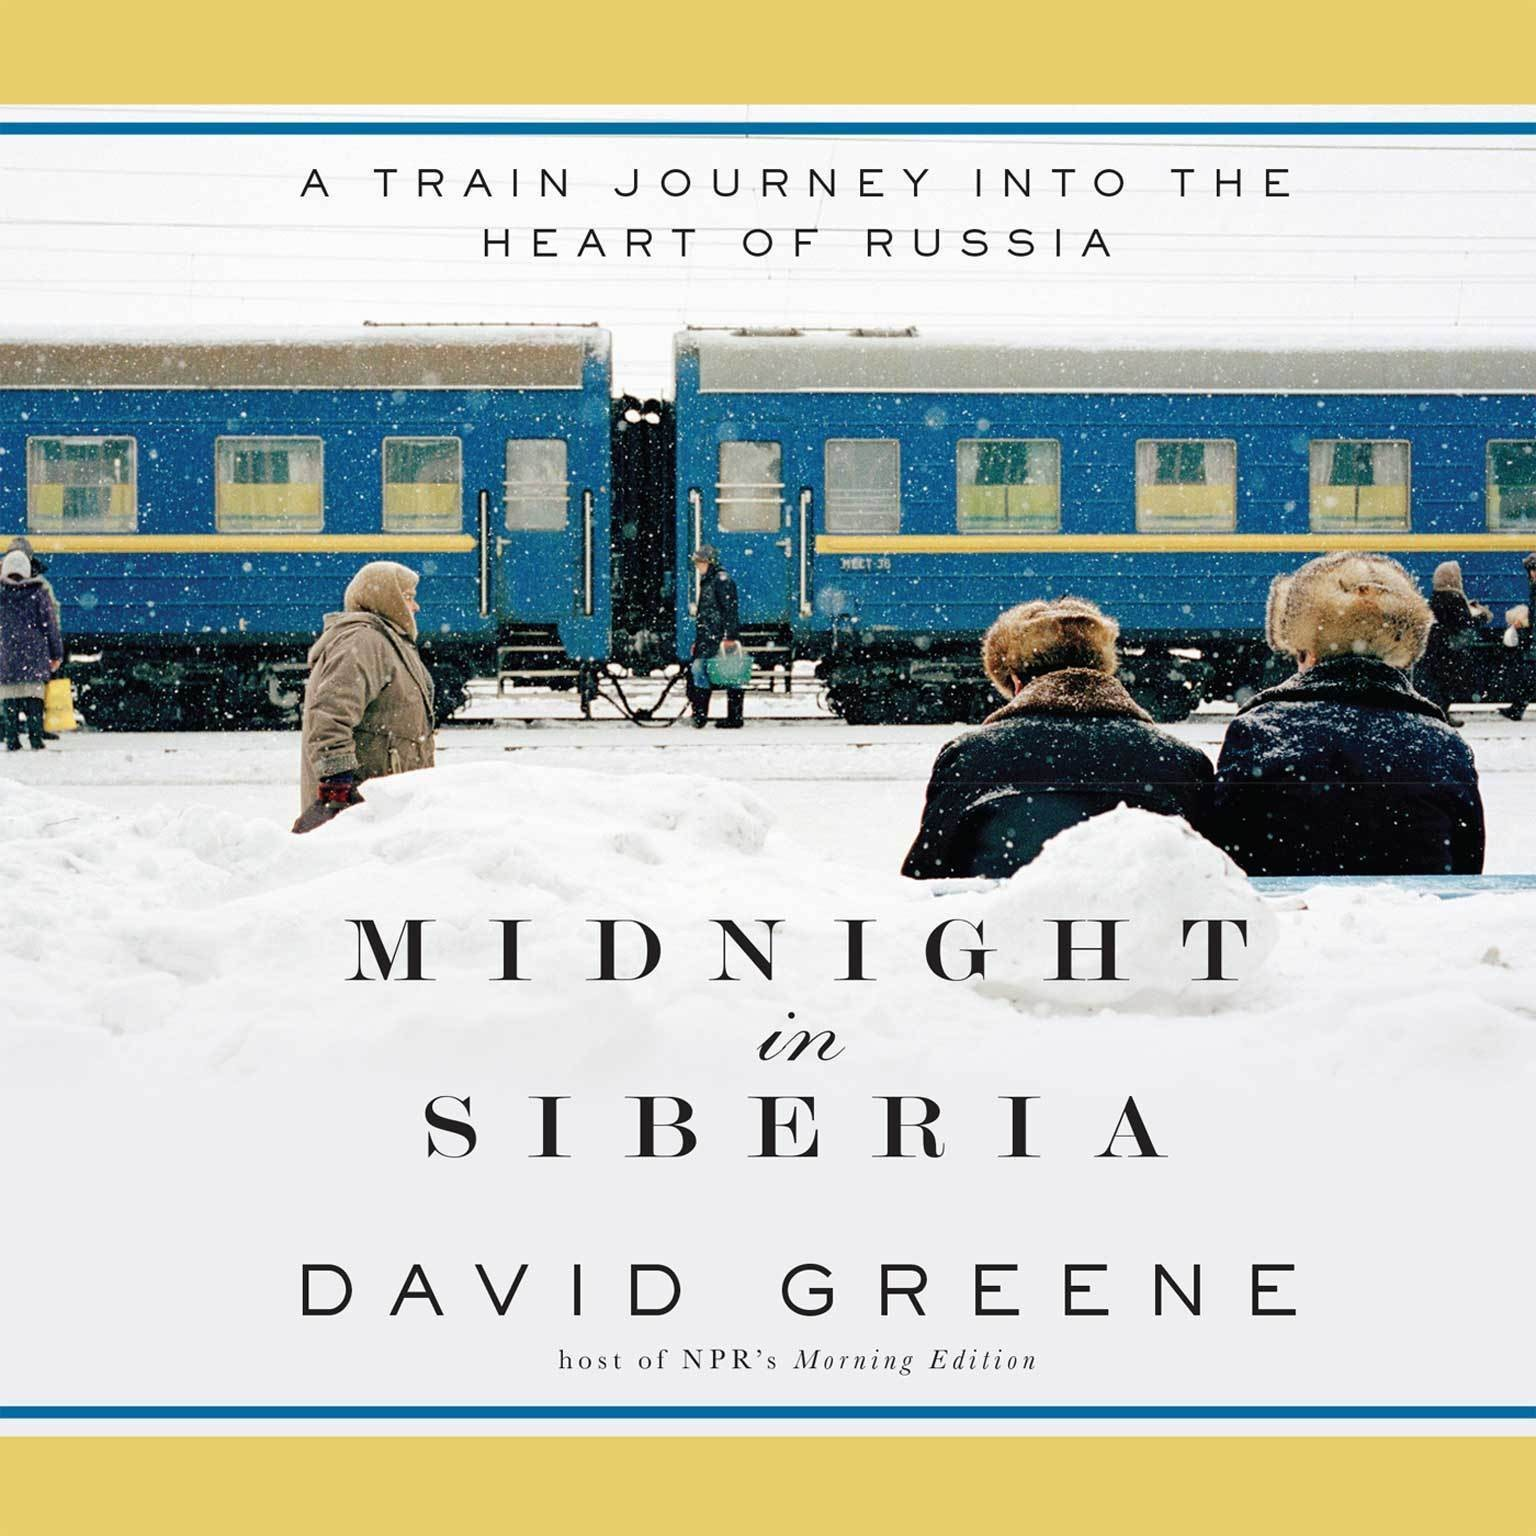 Printable Midnight in Siberia: A Train Journey into the Heart of Russia Audiobook Cover Art